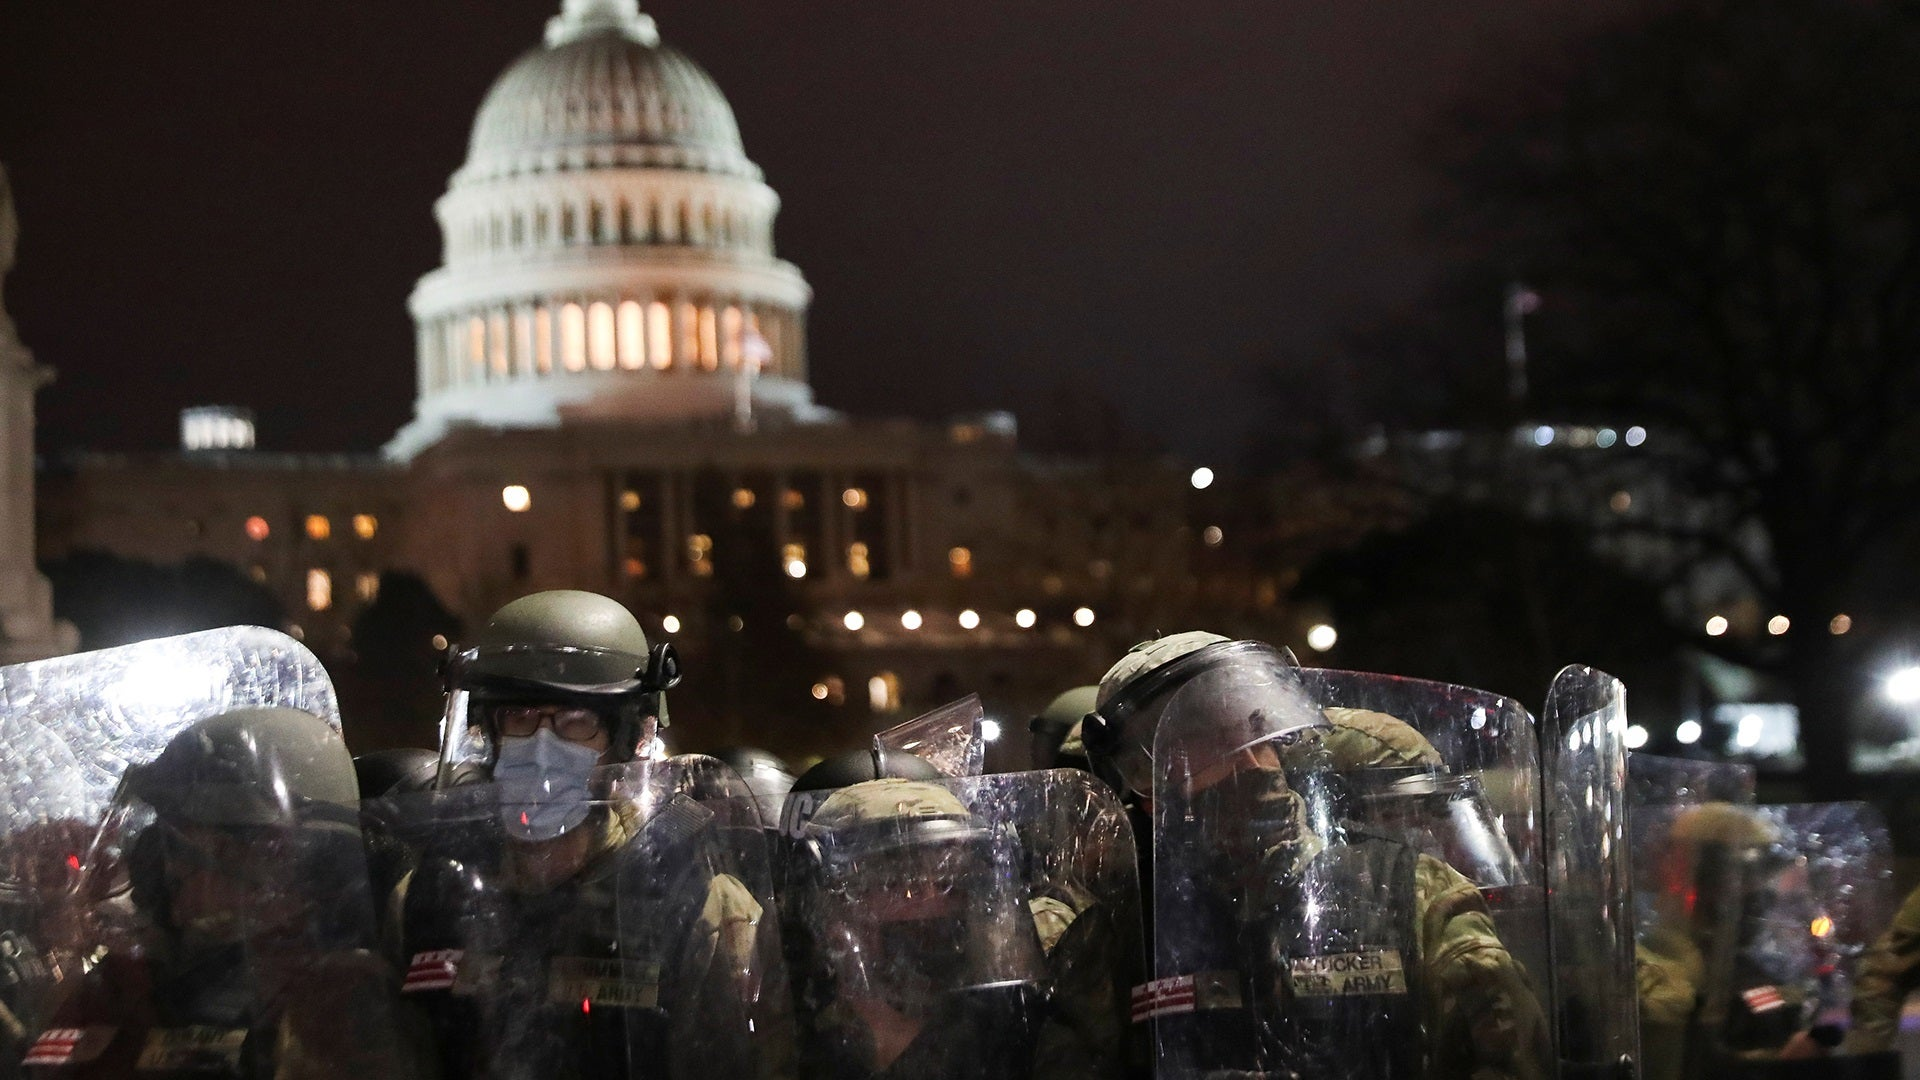 Army pulls 12 National Guardsmen from inauguration security amid increased vetting [Updated]